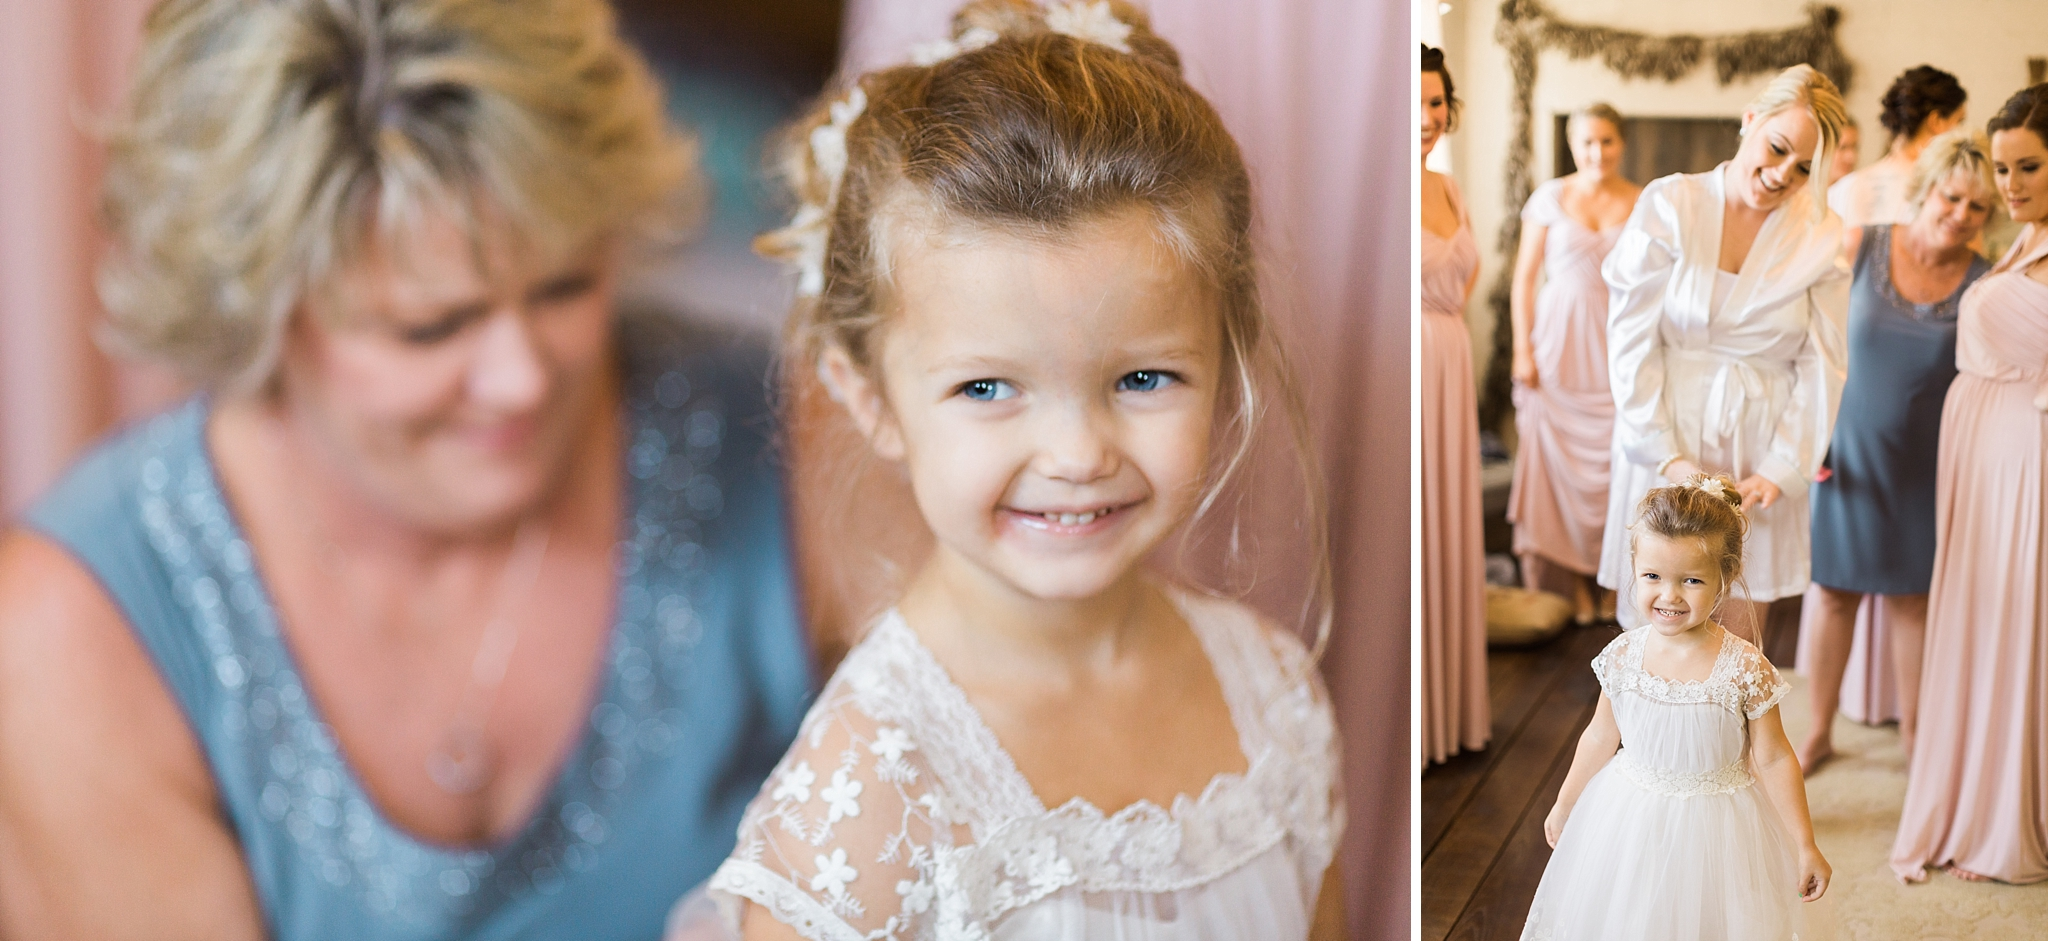 flower-girl-tn-wedding.jpg